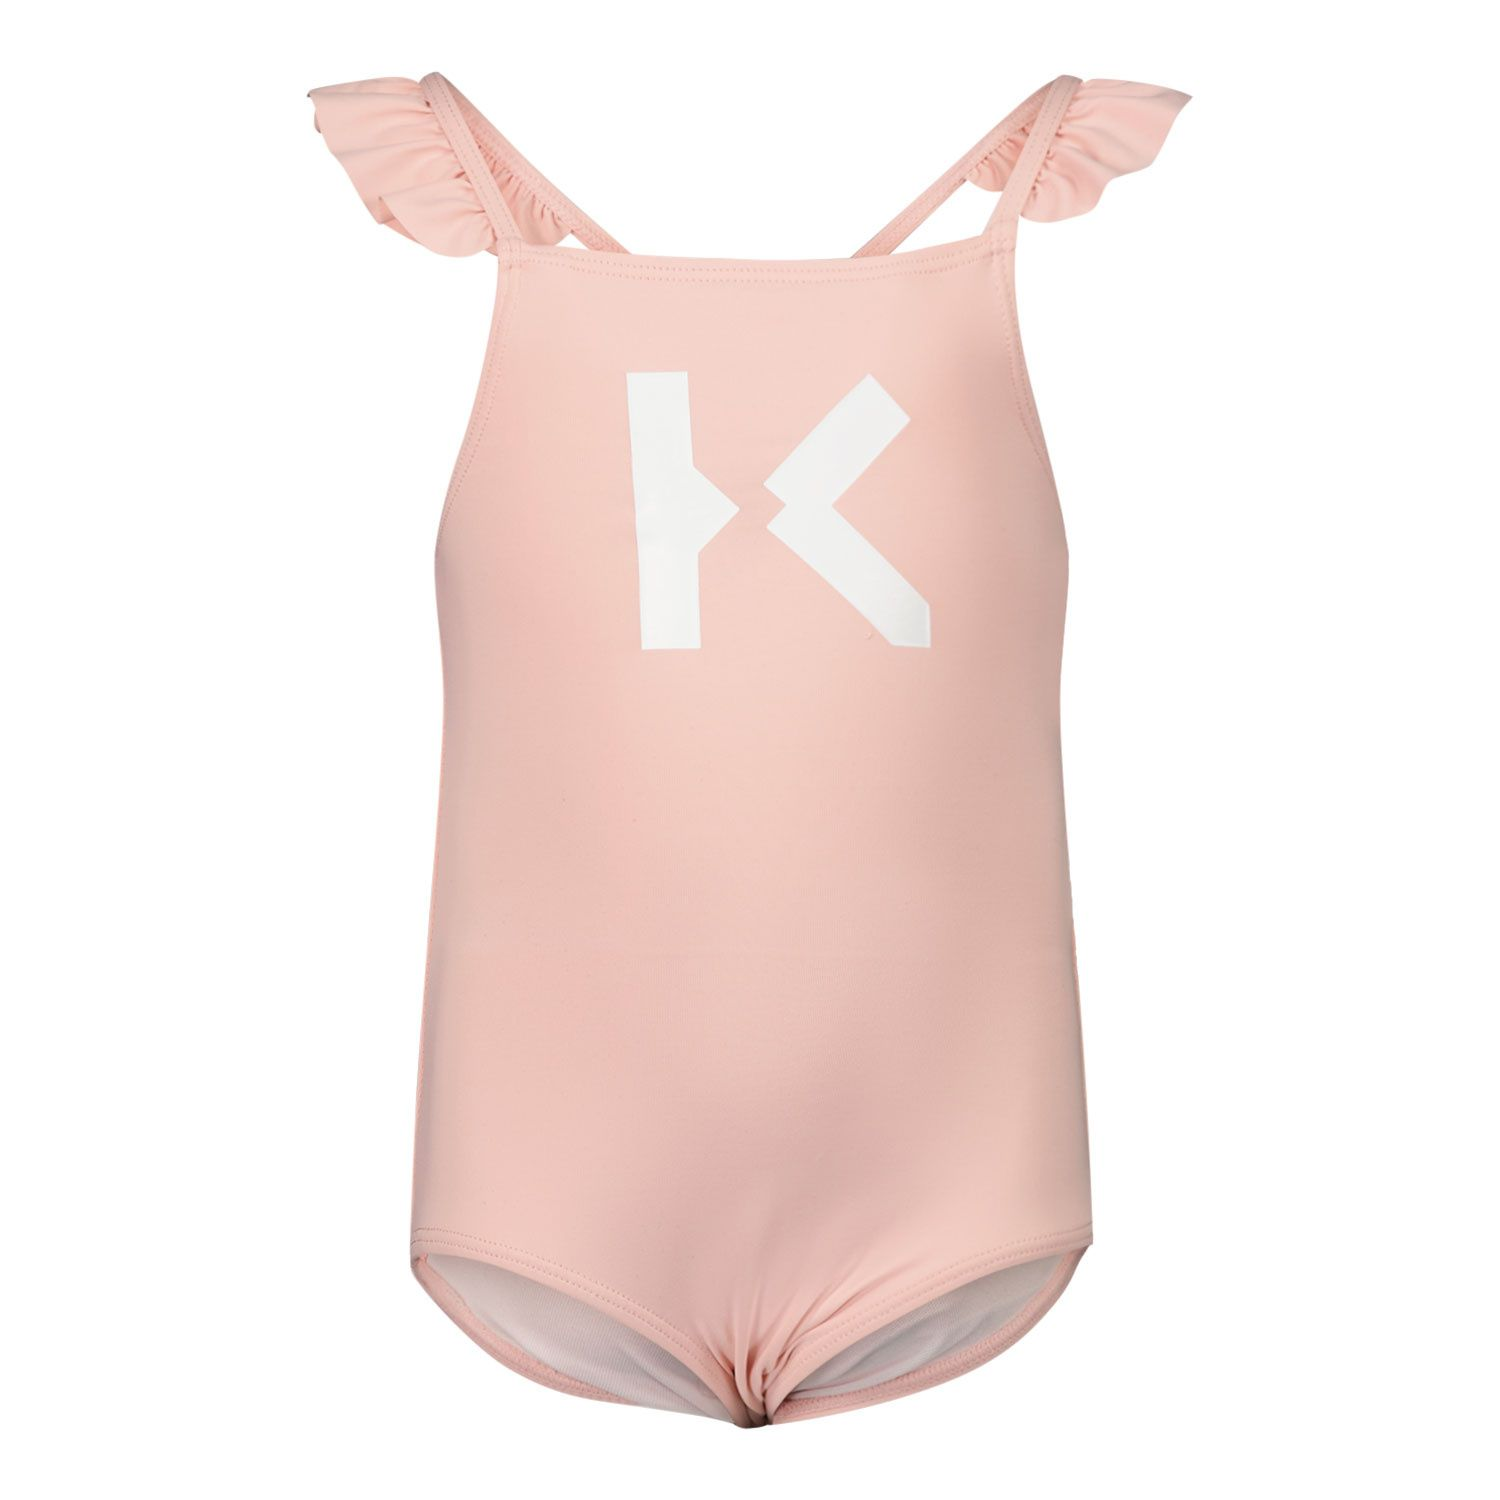 Picture of Kenzo K00001 baby swimwear light pink